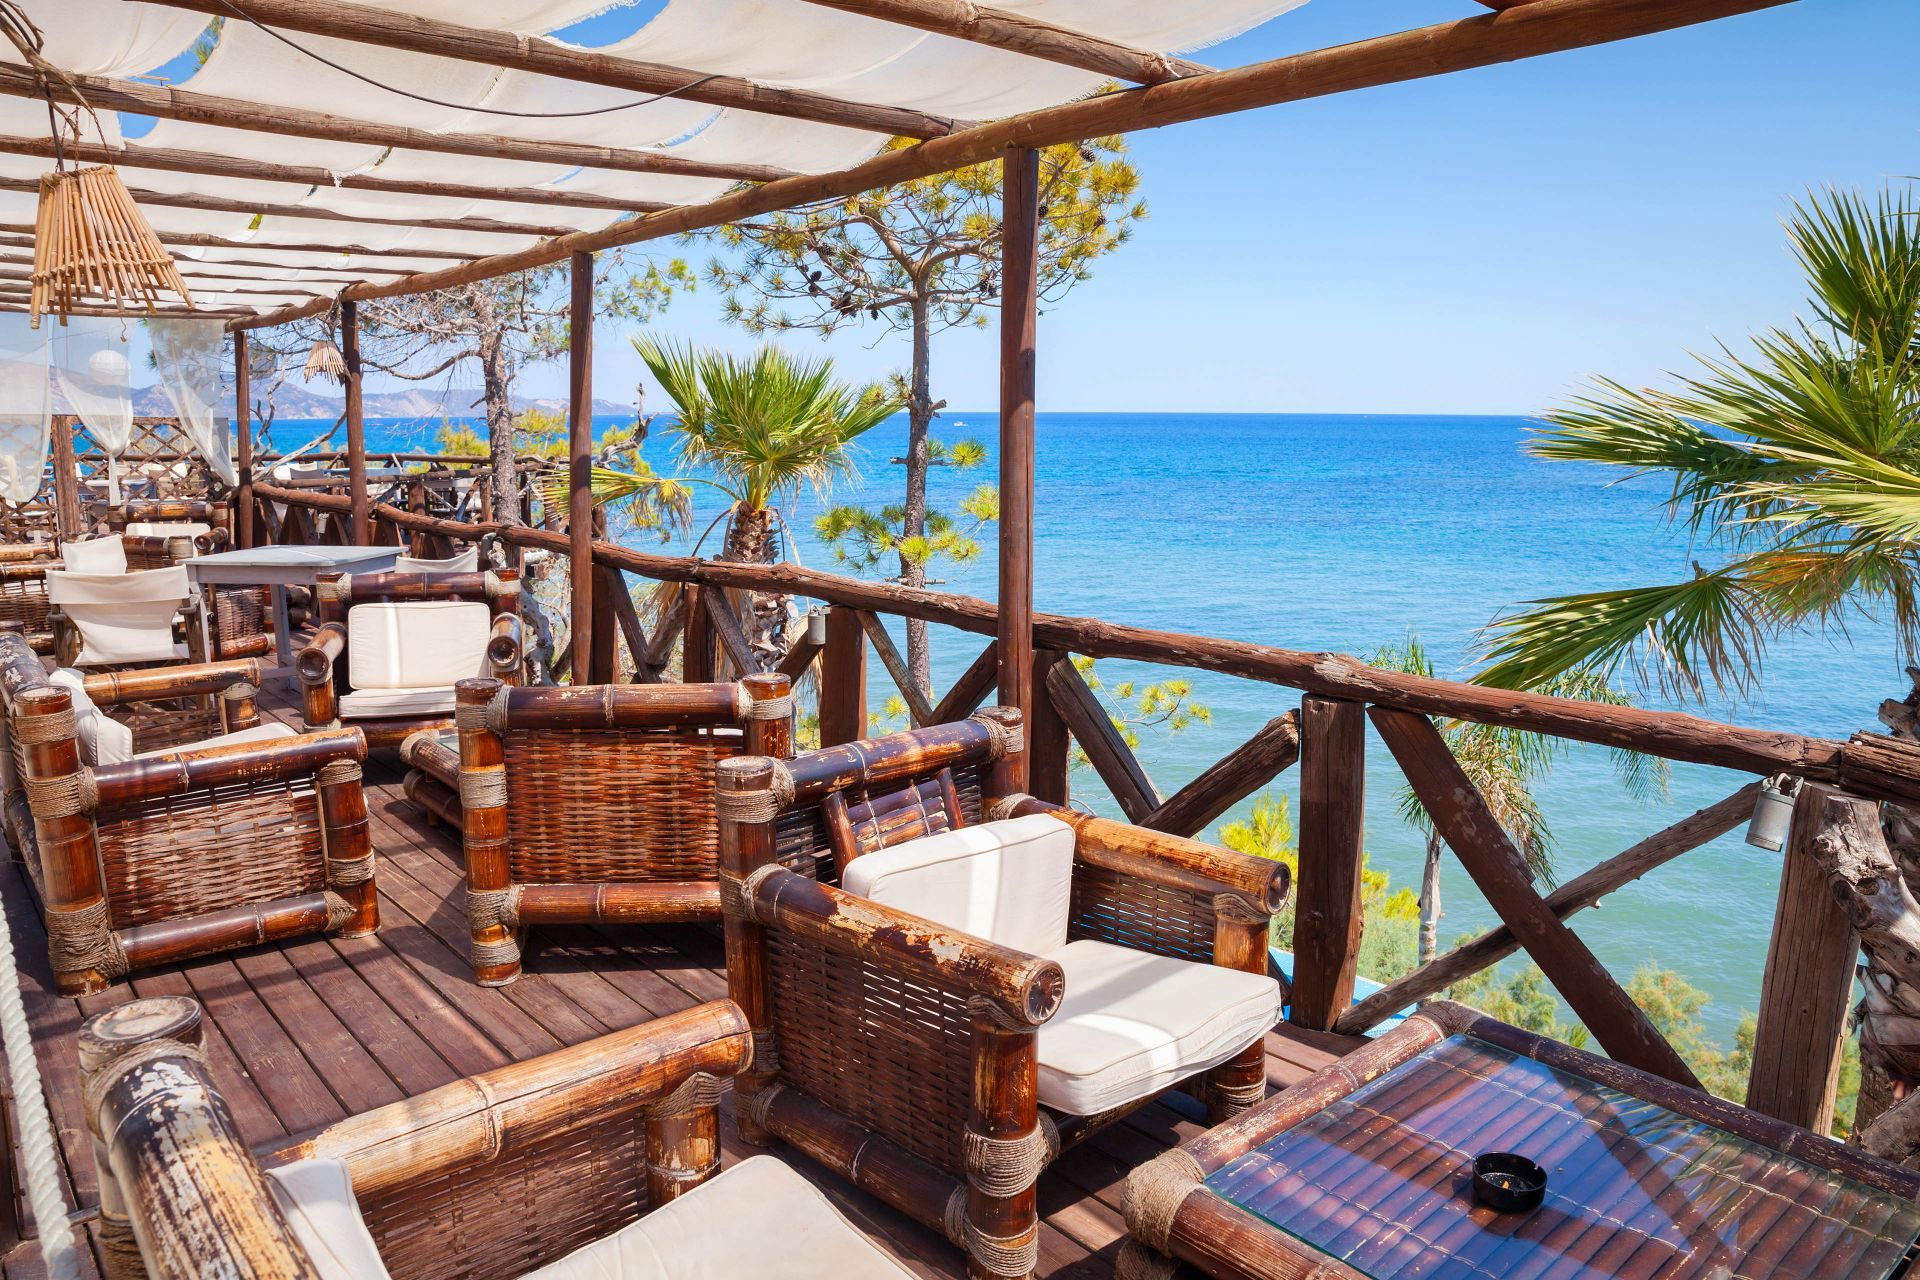 Places to eat and drink in Zakynthos